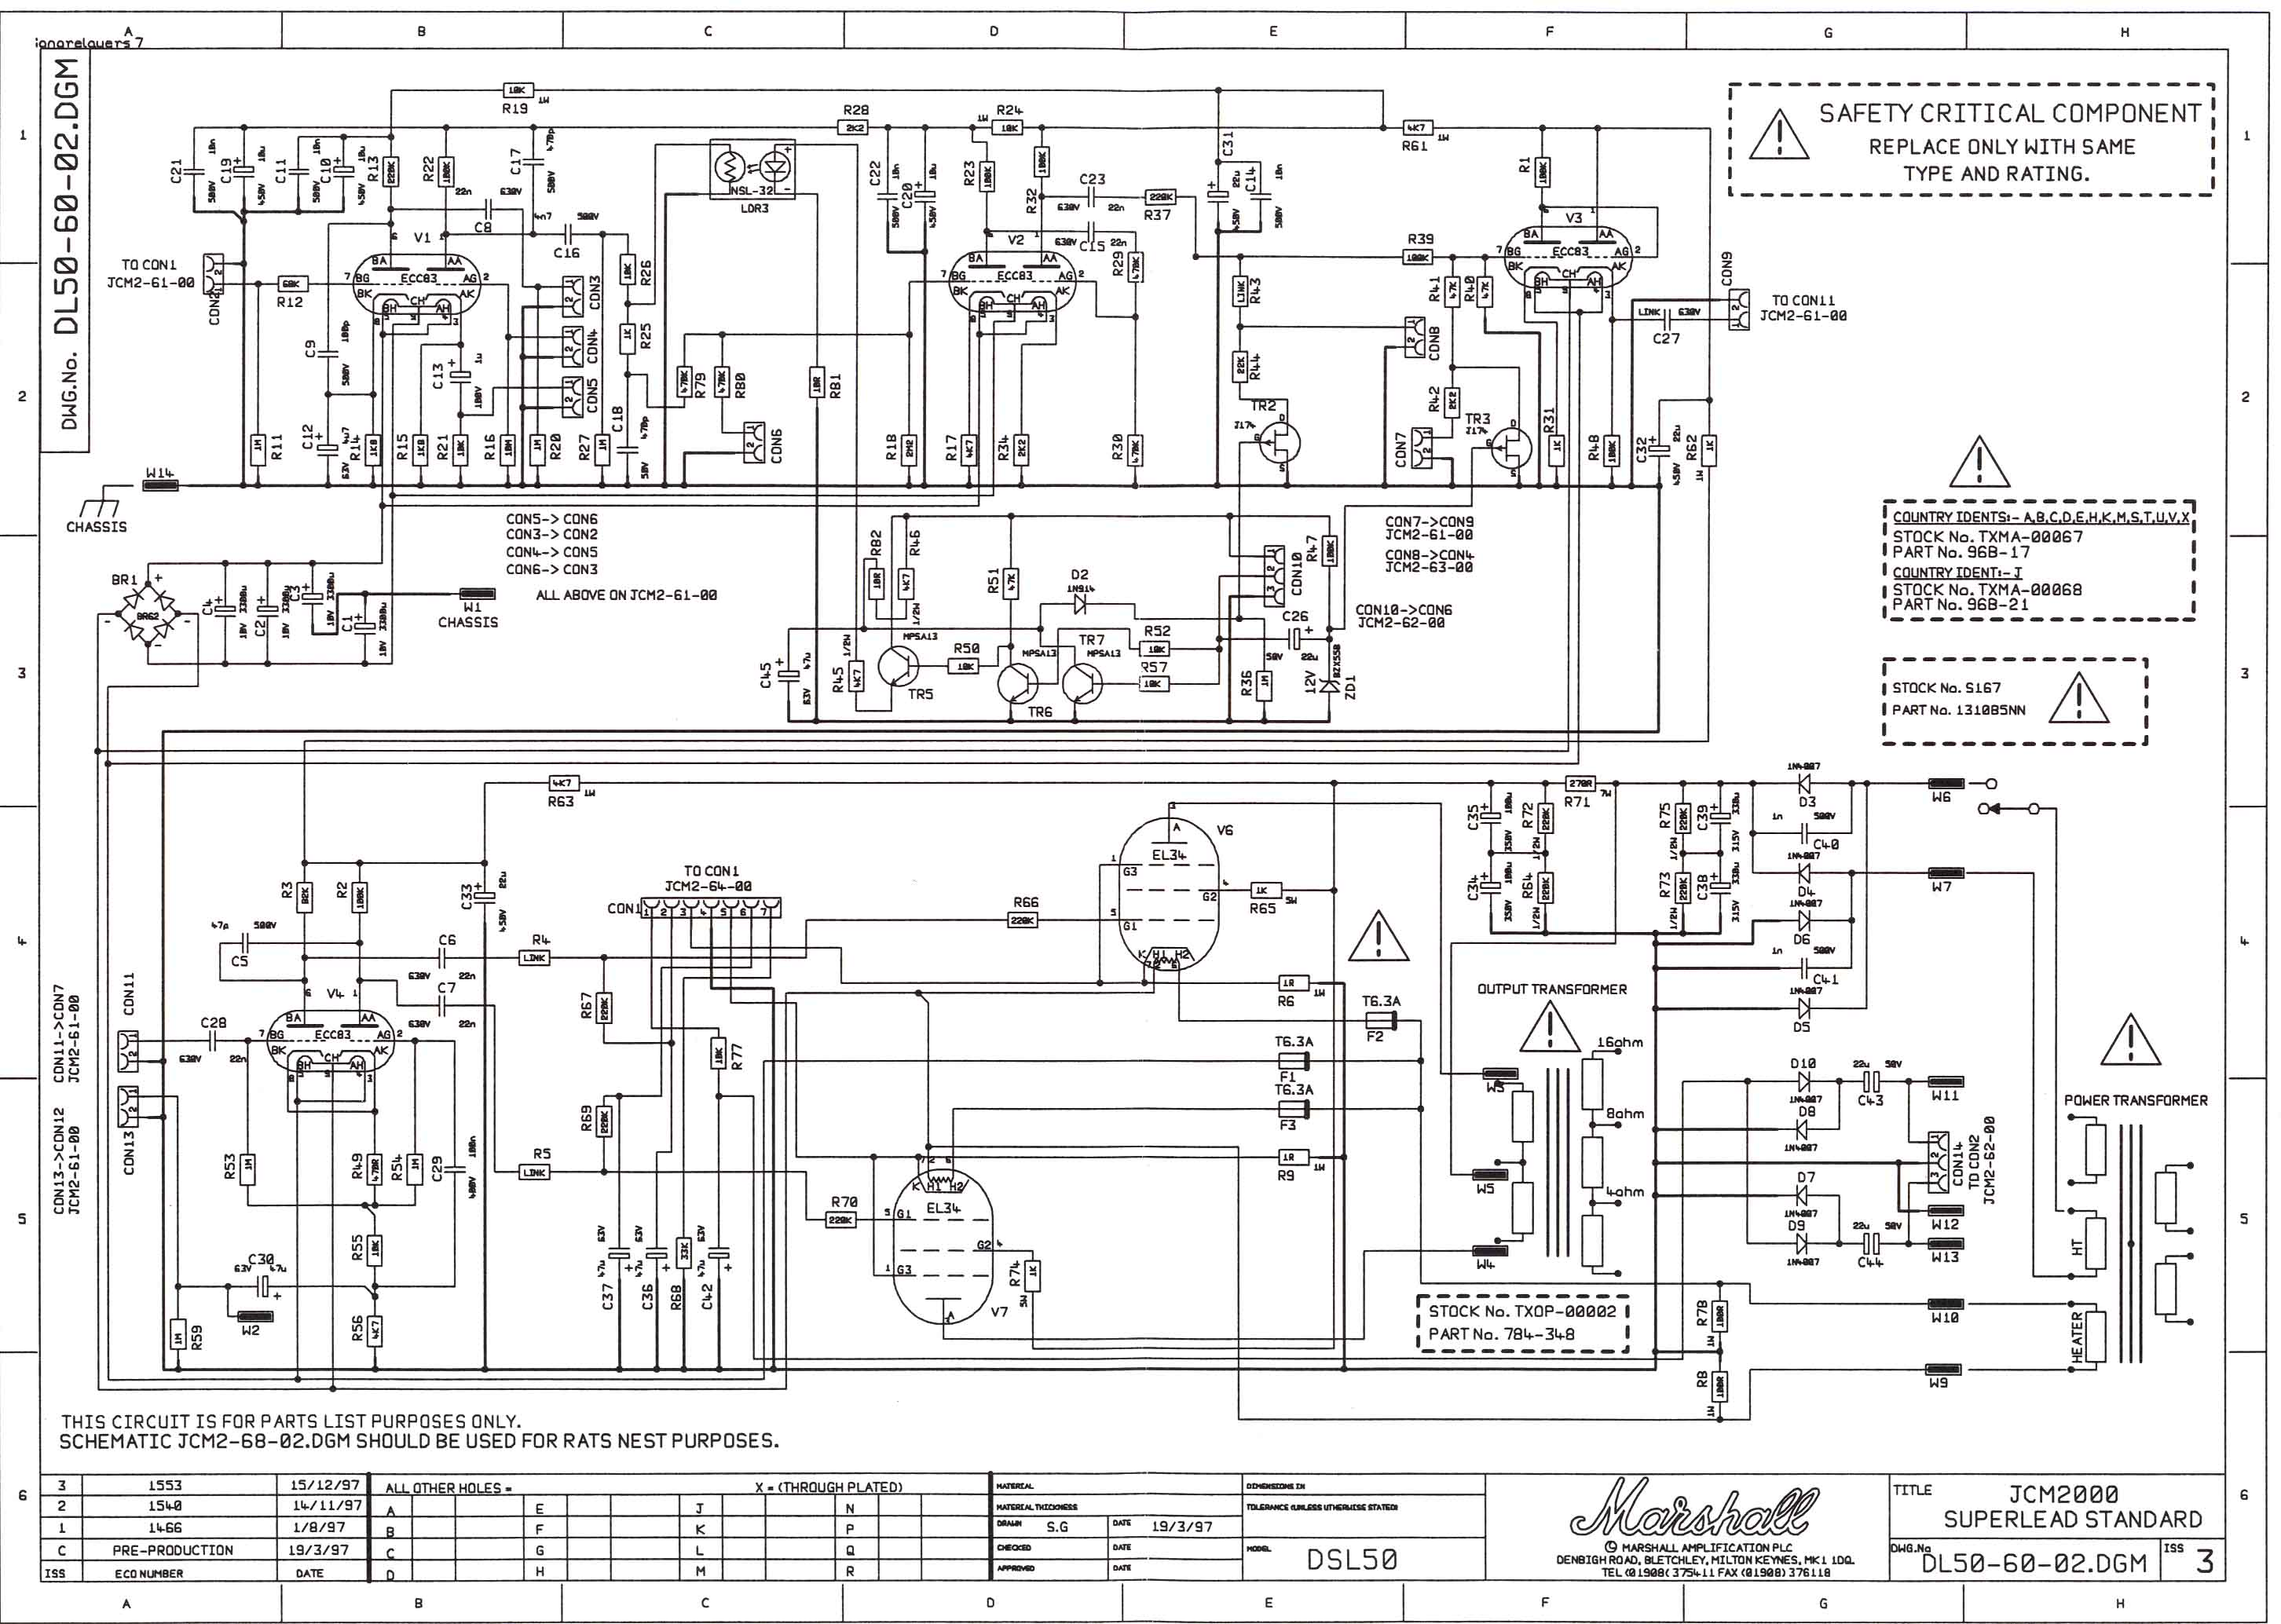 Marshall Amp Schematics Electron Tube Industrial Wiring Diagram Jcm2000 Dsl50 Schematic